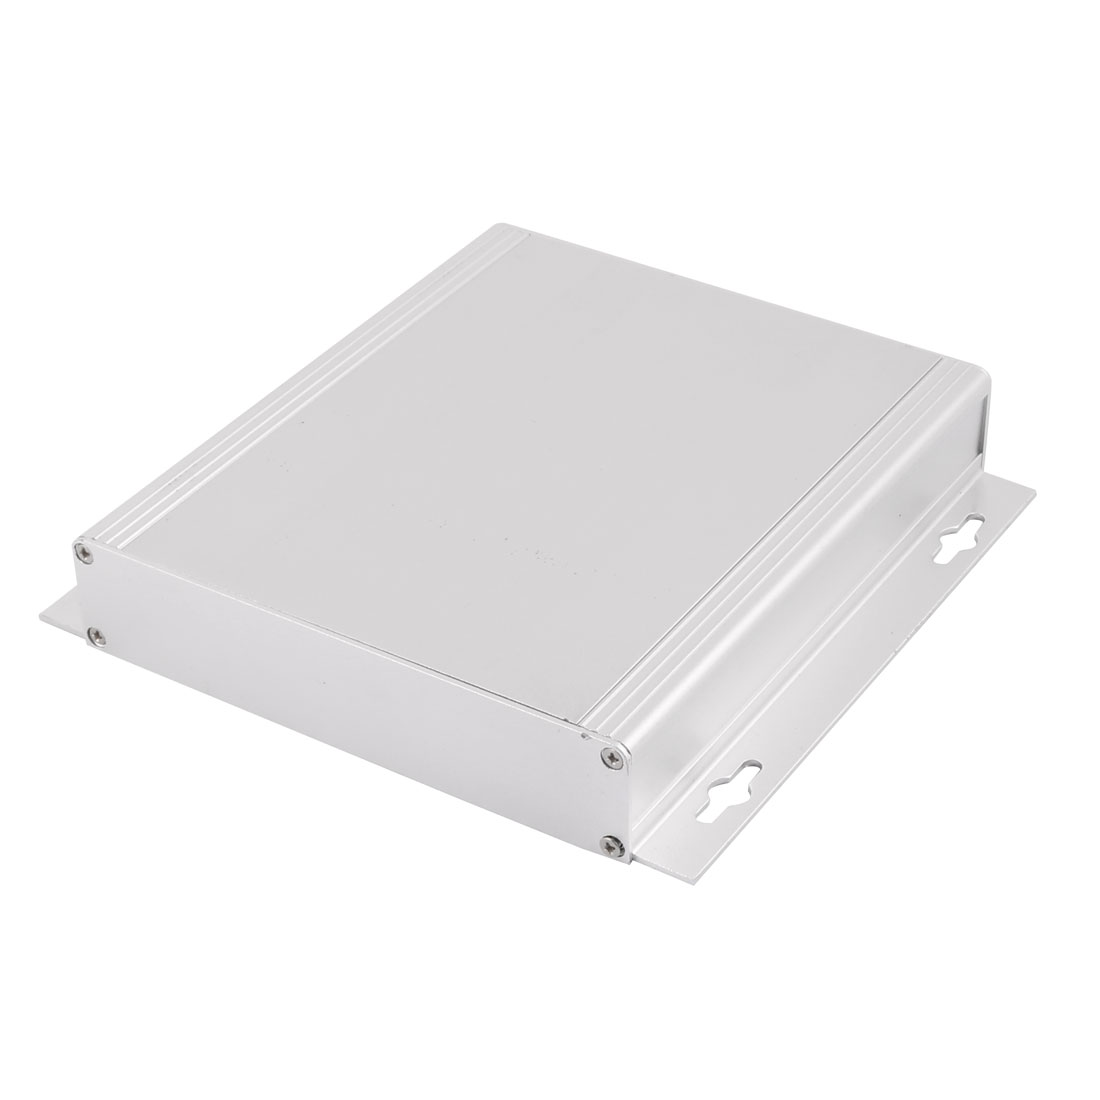 29 x 164 x 155mm Multi-purpose Electronic Extruded Aluminum Enclosure Case Silver Tone